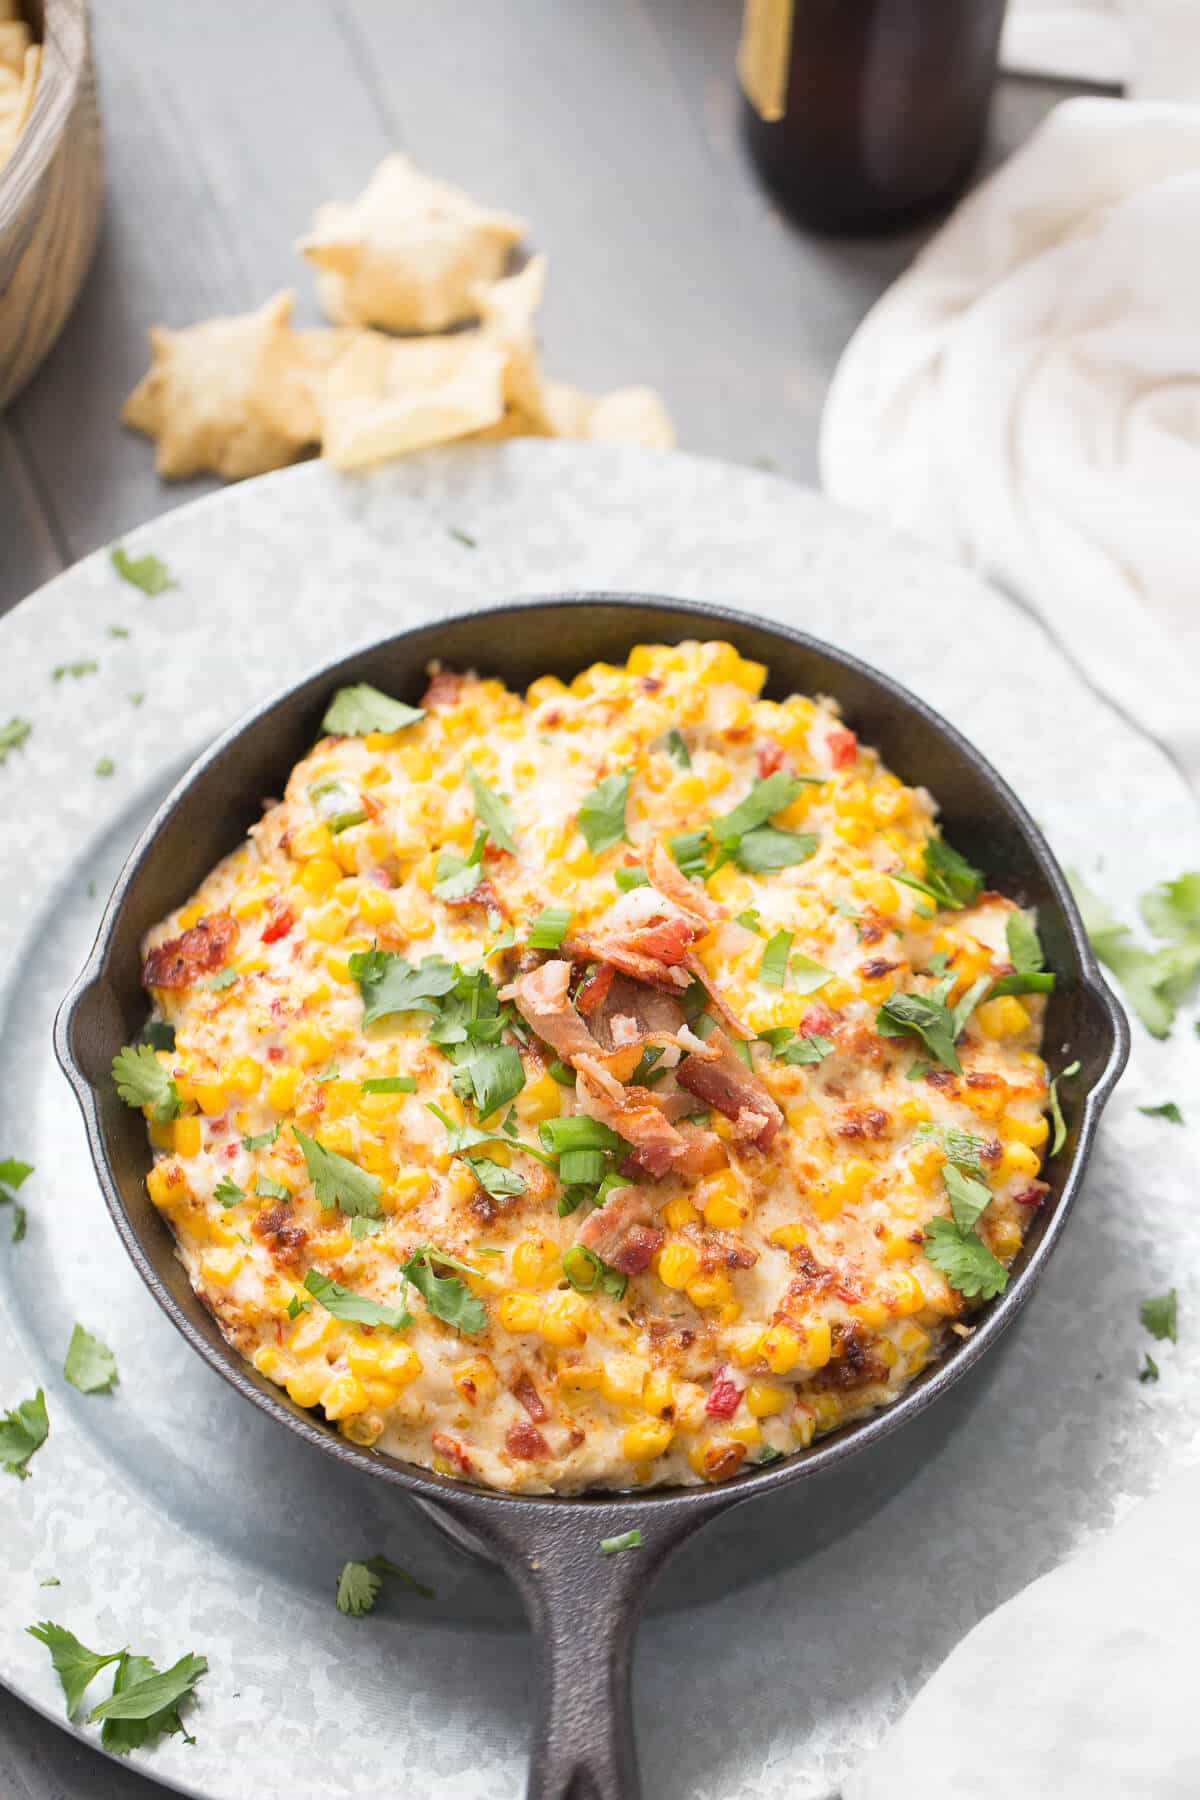 This hot corn dip is so easy and so good! It will be the first dip to disappear!